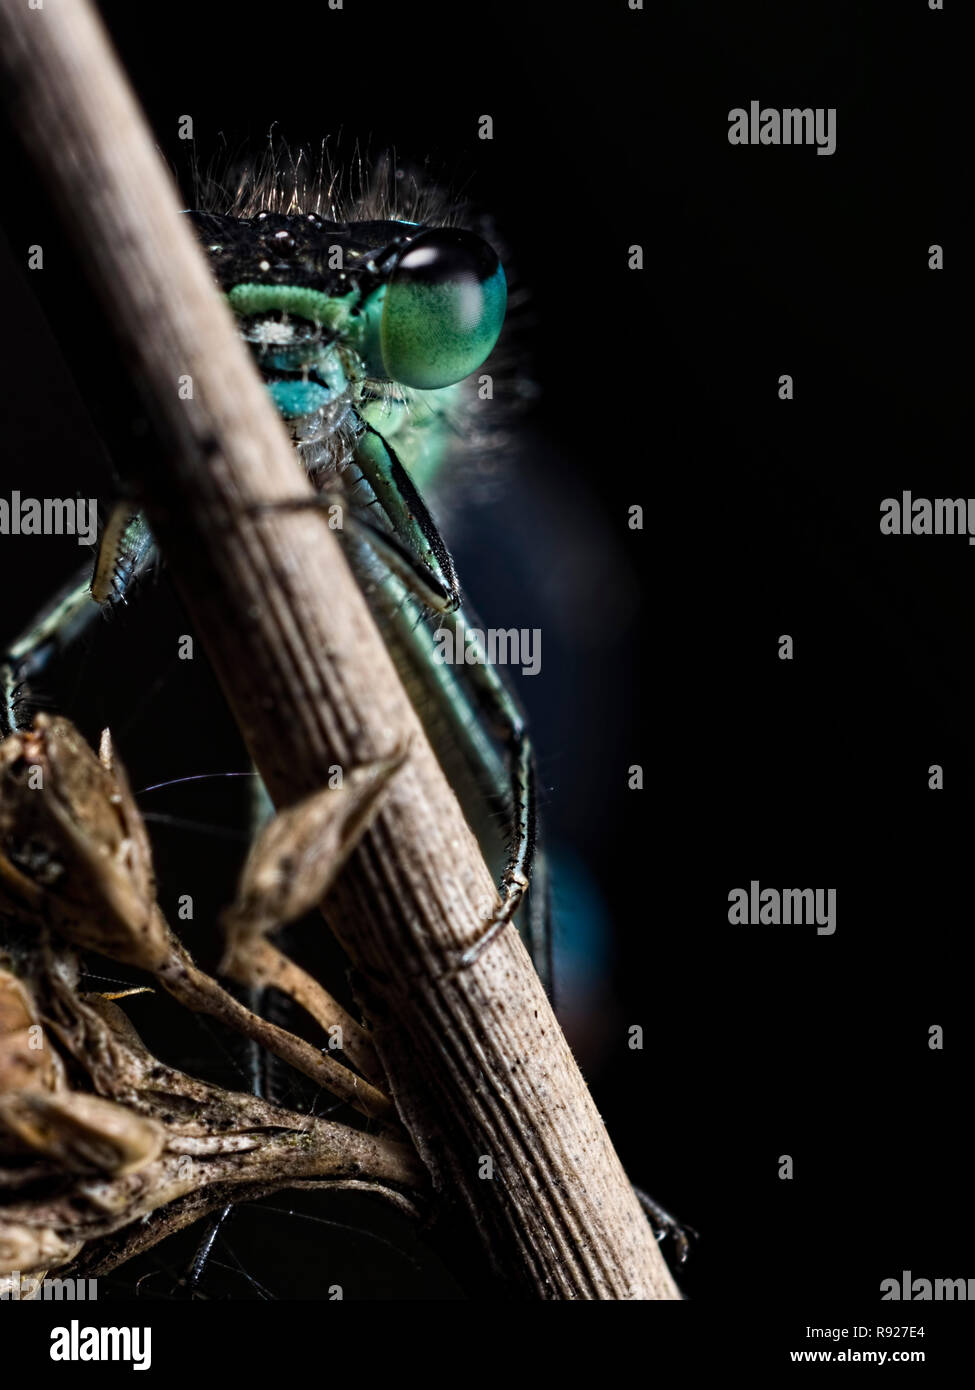 Out of the Dark. A Blue-tailed Damselfly (Ischnura elegans) appearing out of the darkness - Stock Image